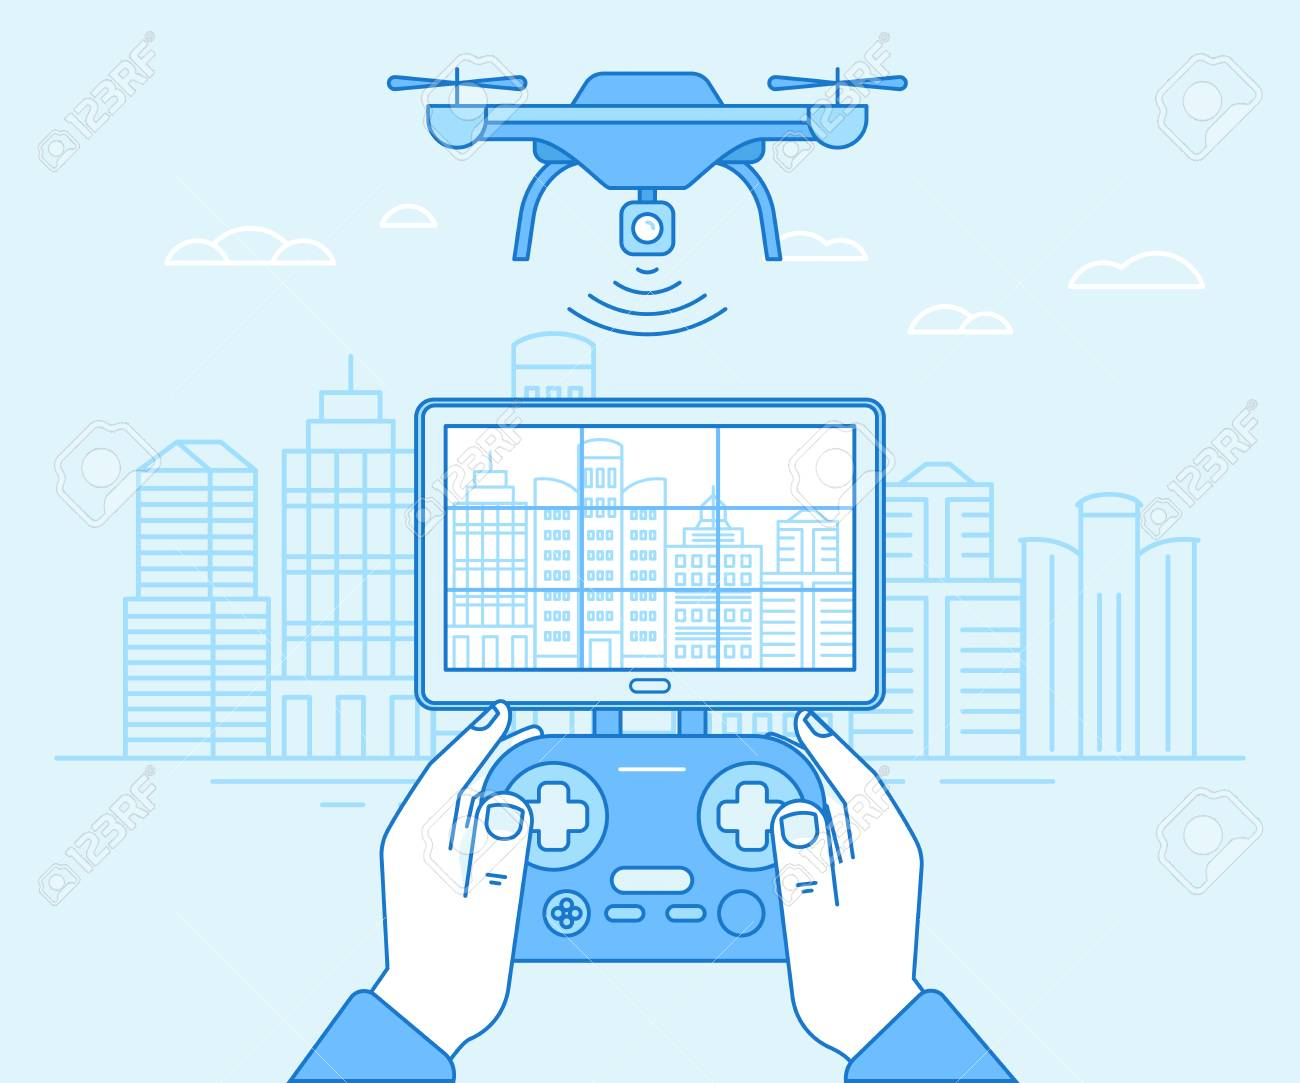 Vector illustration in flat linear style and blue colors - drone